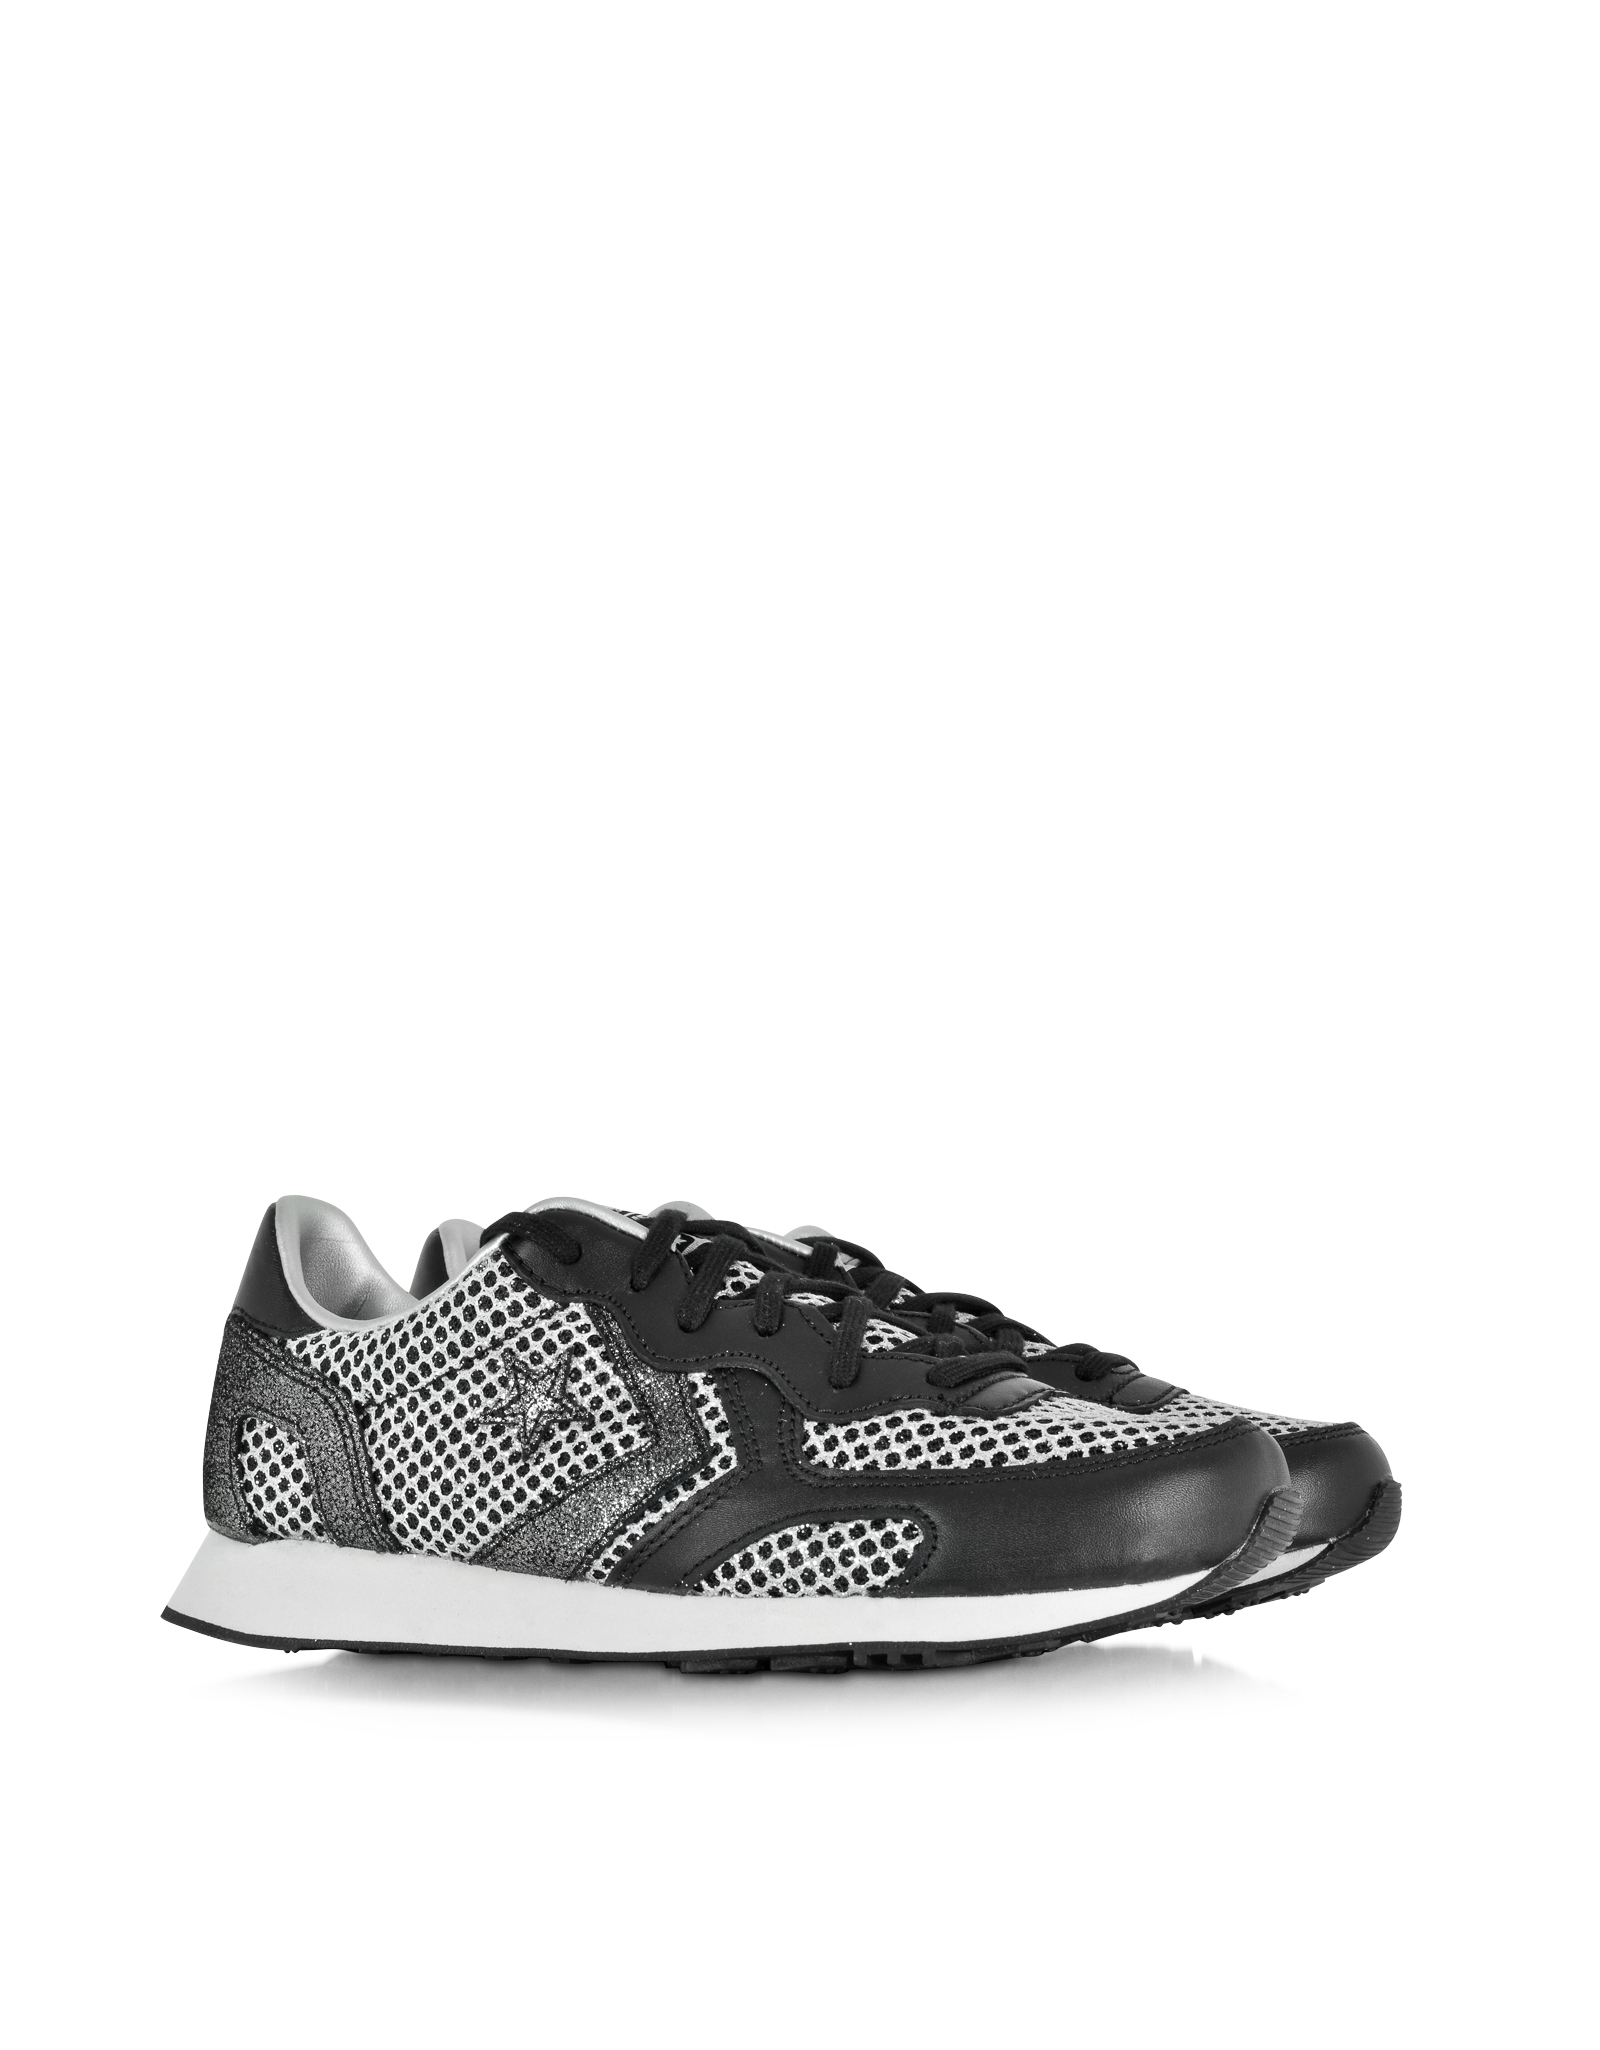 AUCKLAND RACER OX SEQUINS/LEATHER METALLIC - FOOTWEAR - Low-tops & sneakers Converse BtfnSfbCAR